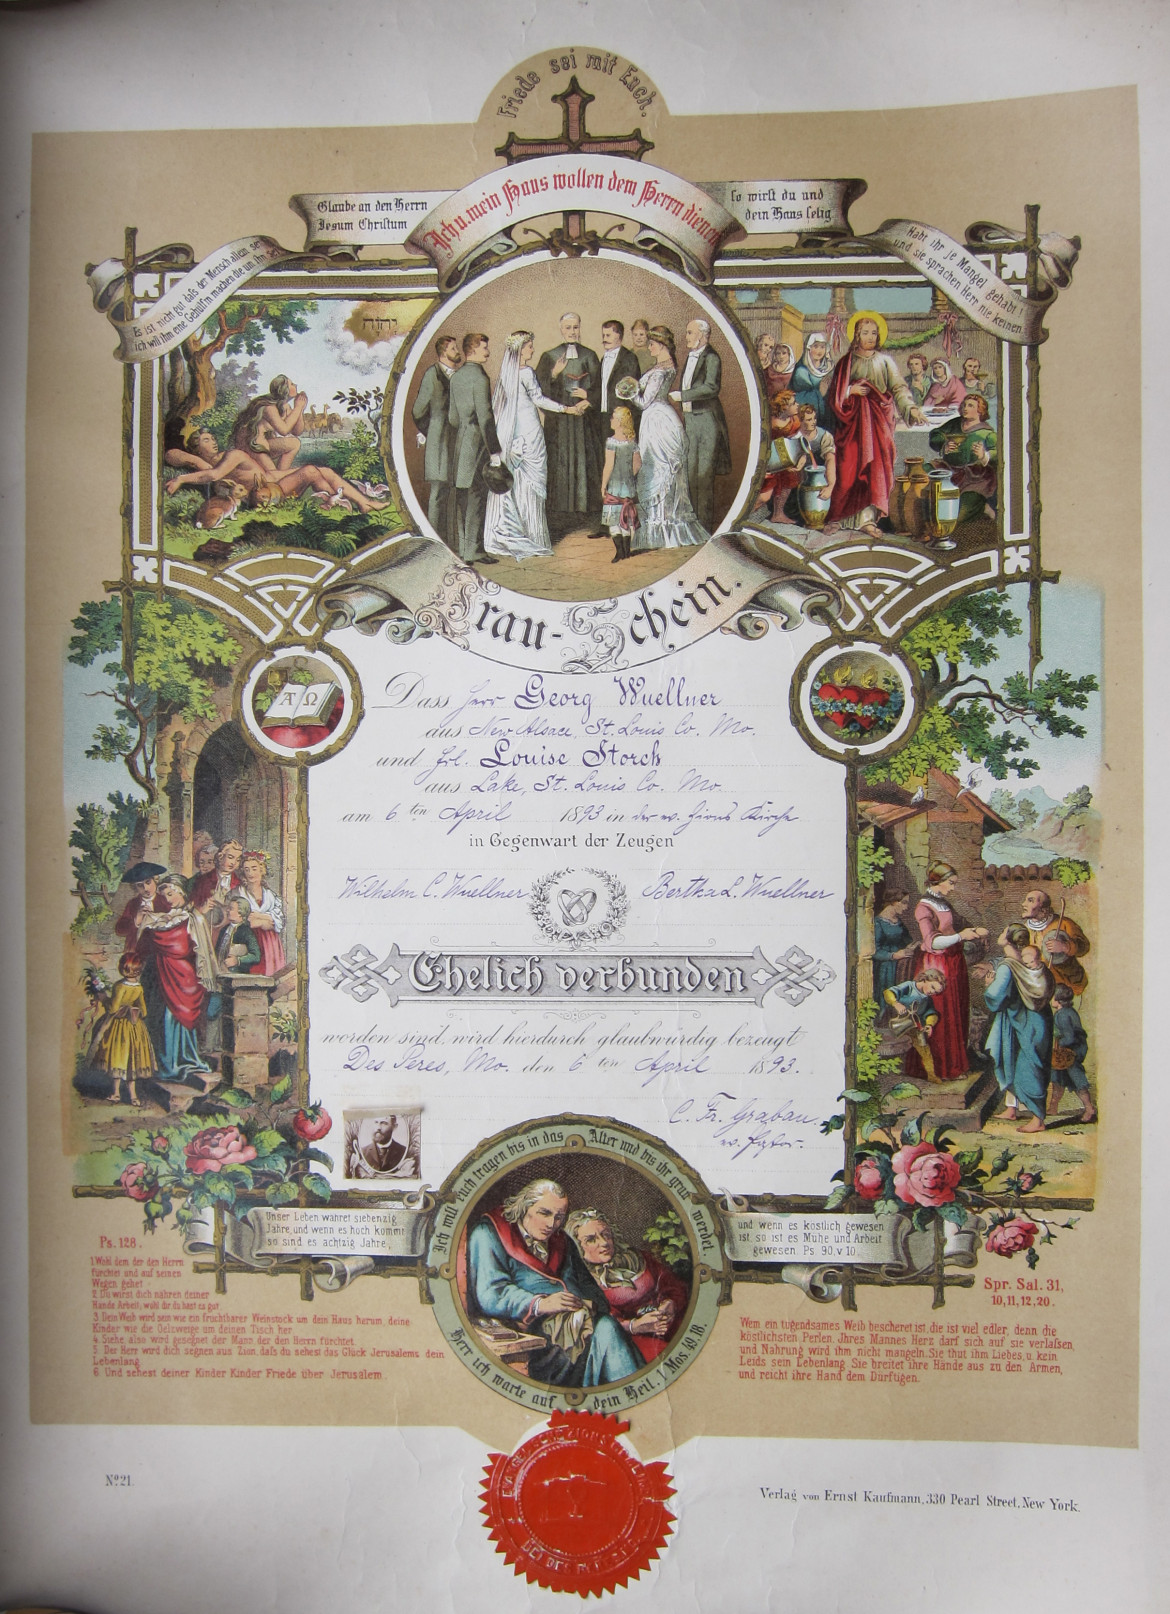 The marriage certificate of Matt's great-great grandparents, Georg Wuellner and Louise Storch.